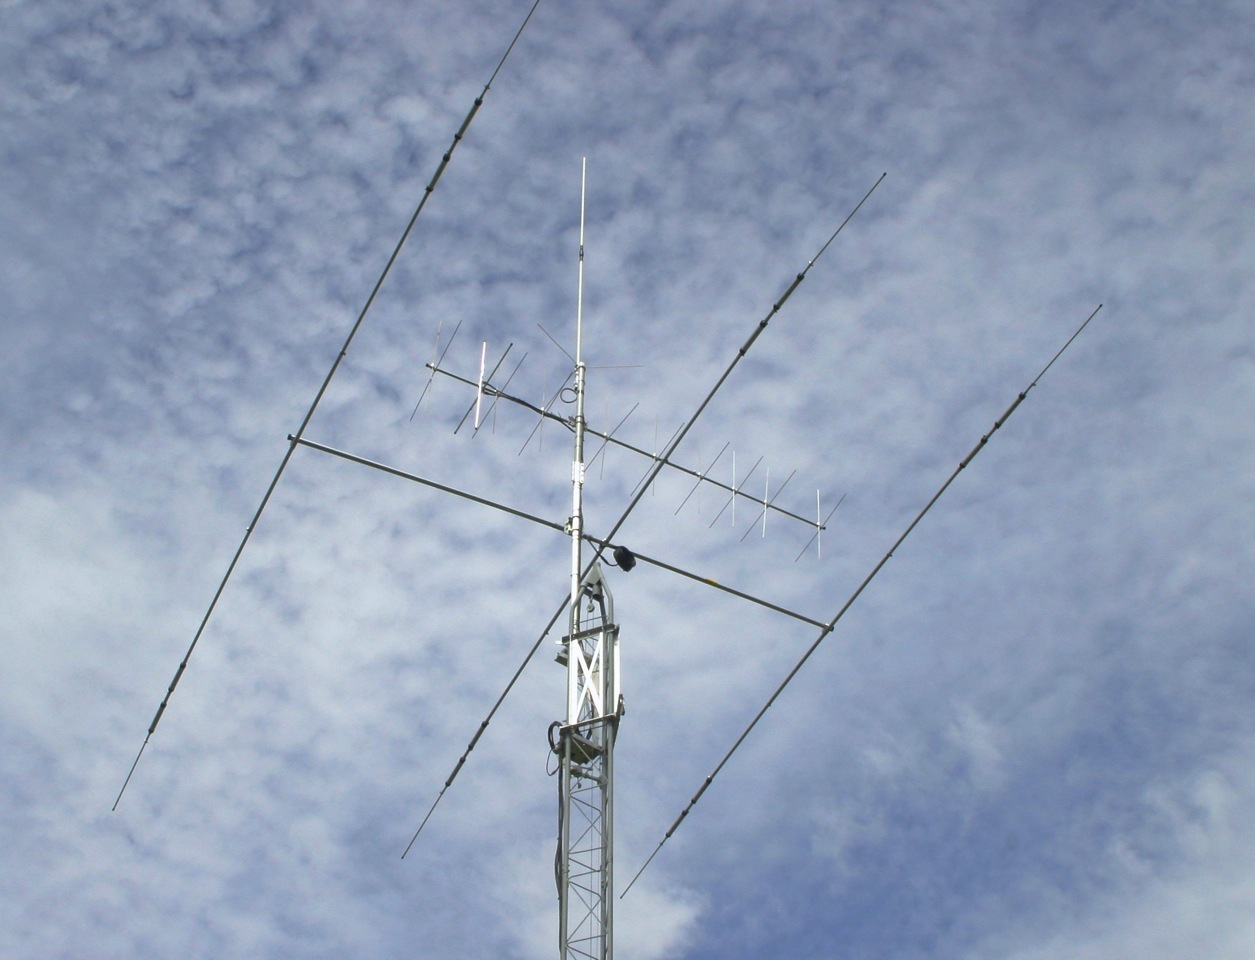 Here is my 45 ' tower with a Hazer to raising and lowering the antennas to work on them. The antenna are a Cushcraft A3S Tribander, A-148-20 T 2M cross-yogi also a Comet 2m 70CM Coupled up to a Yaesu FT 897 D and a Yaesu FT8800